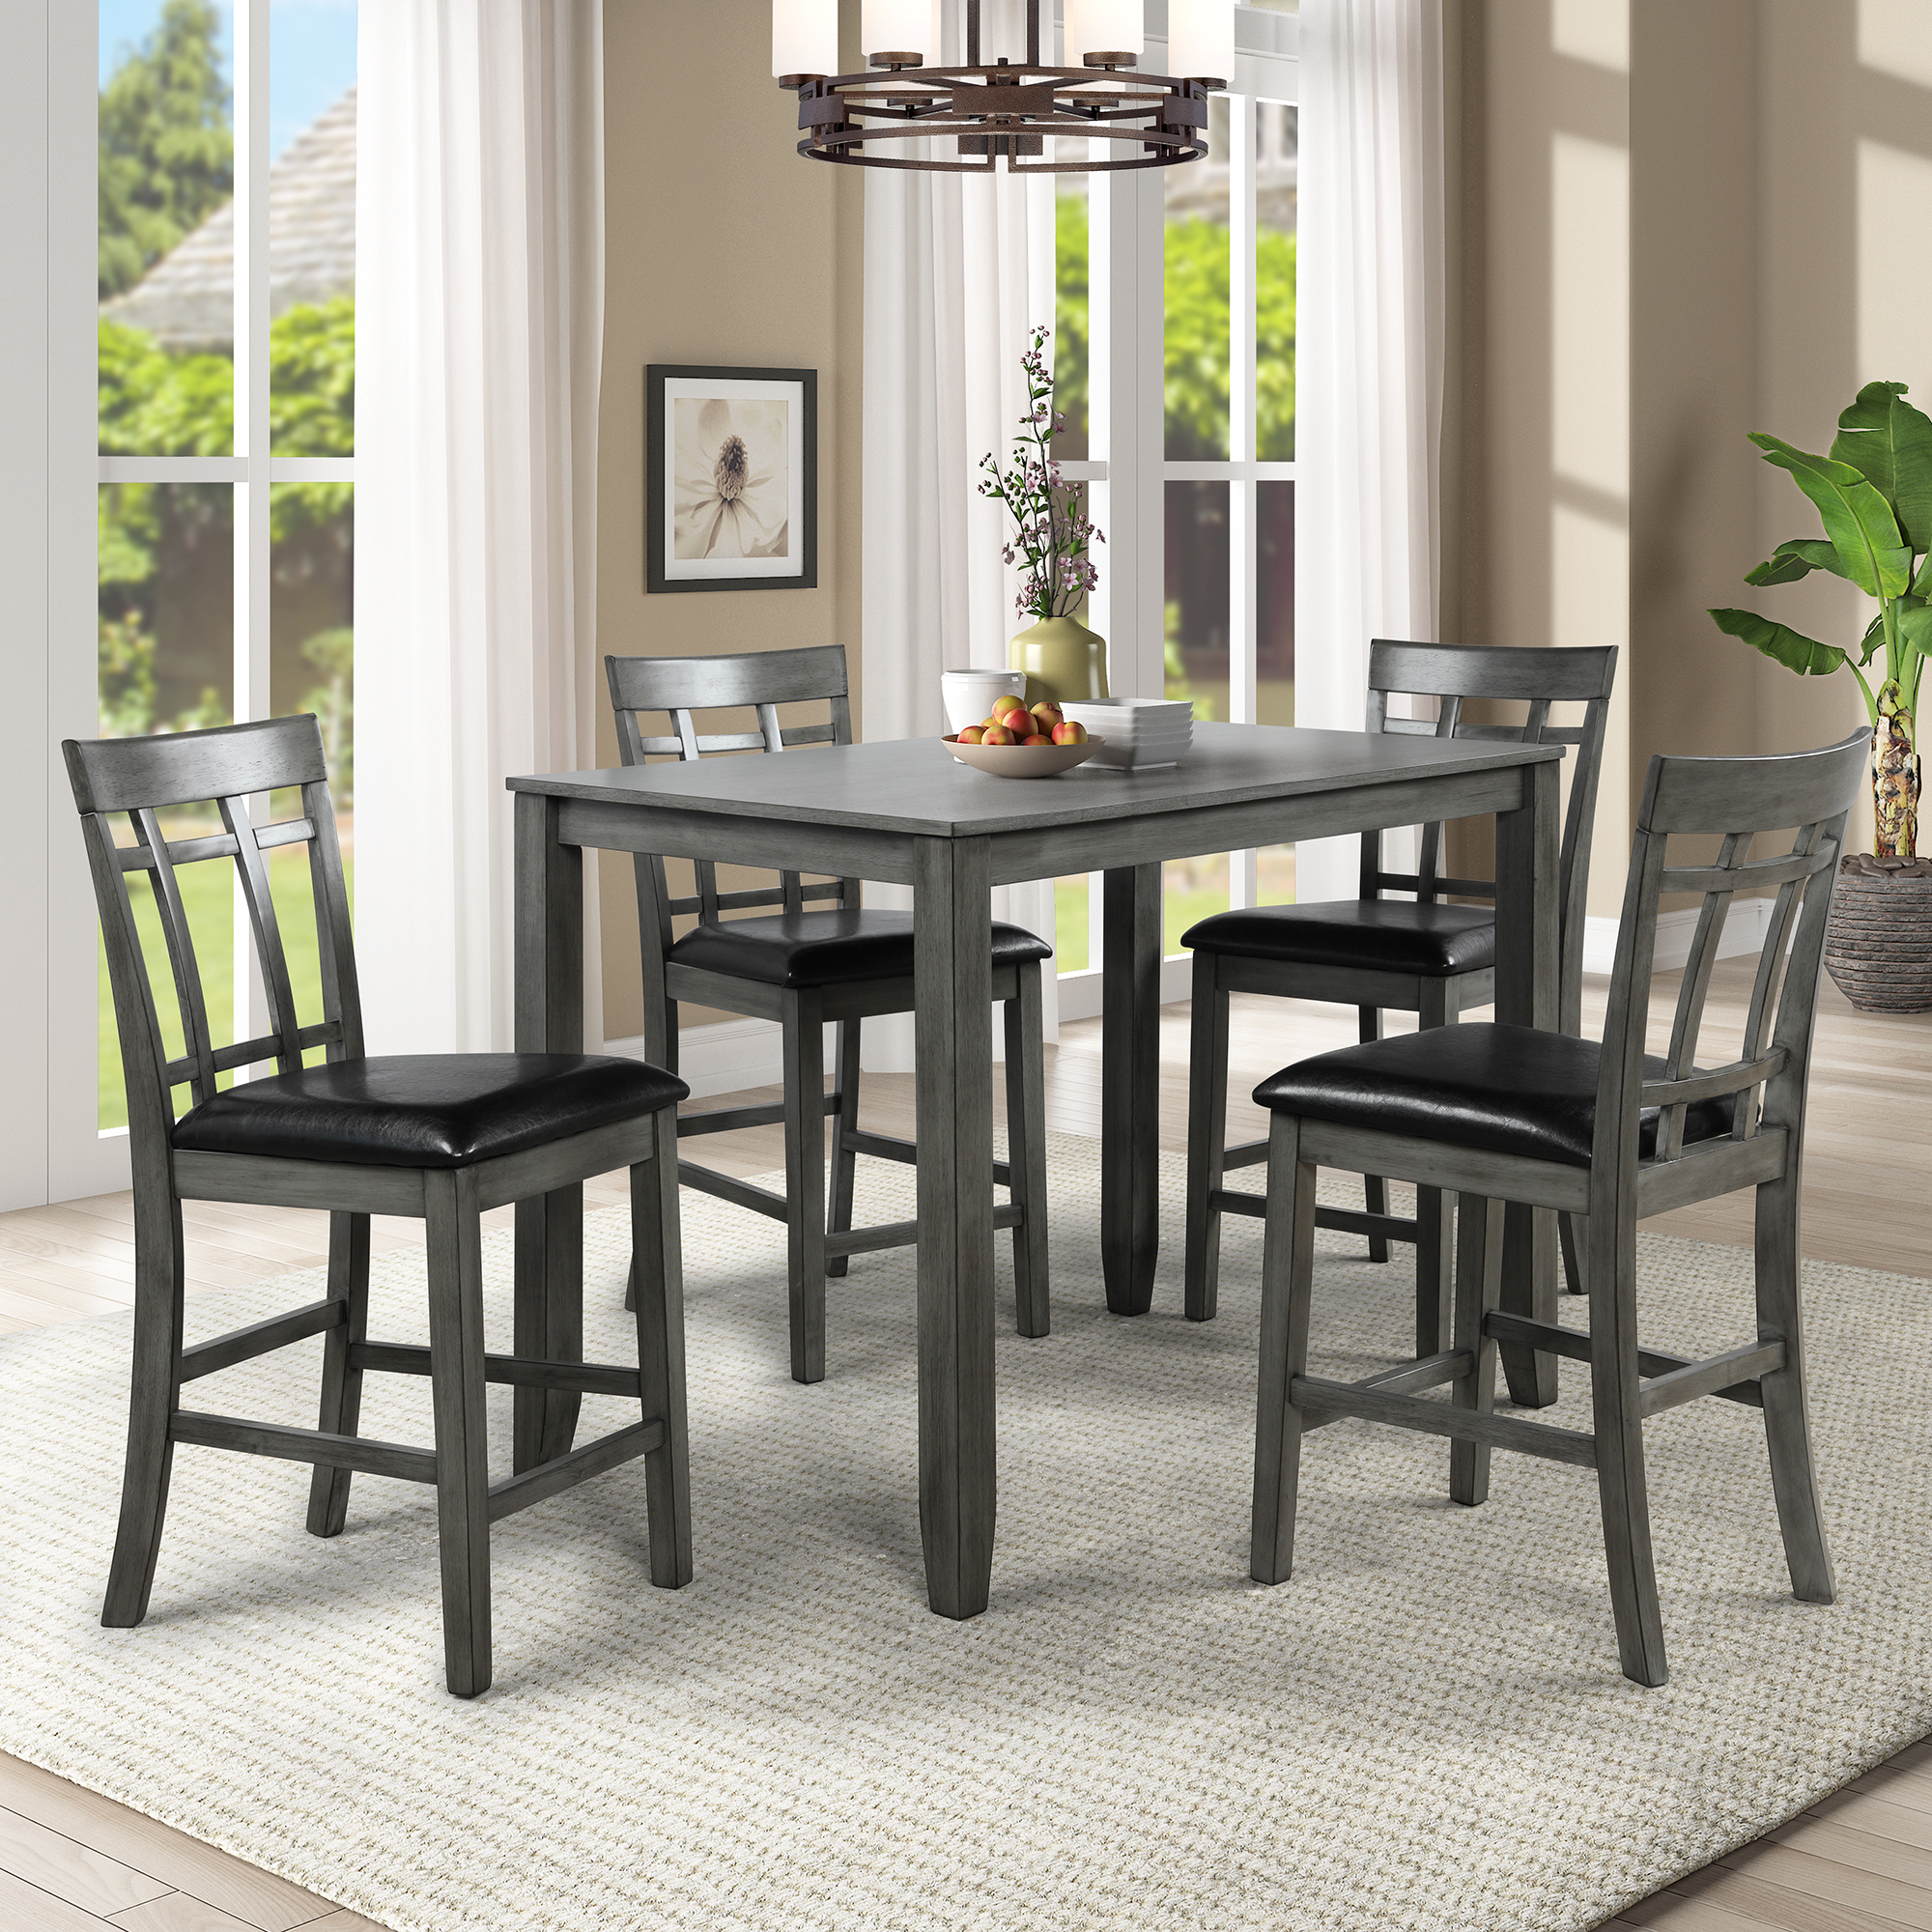 clearance kitchen dining table set 5 piece counter on dining room sets on clearance id=36322